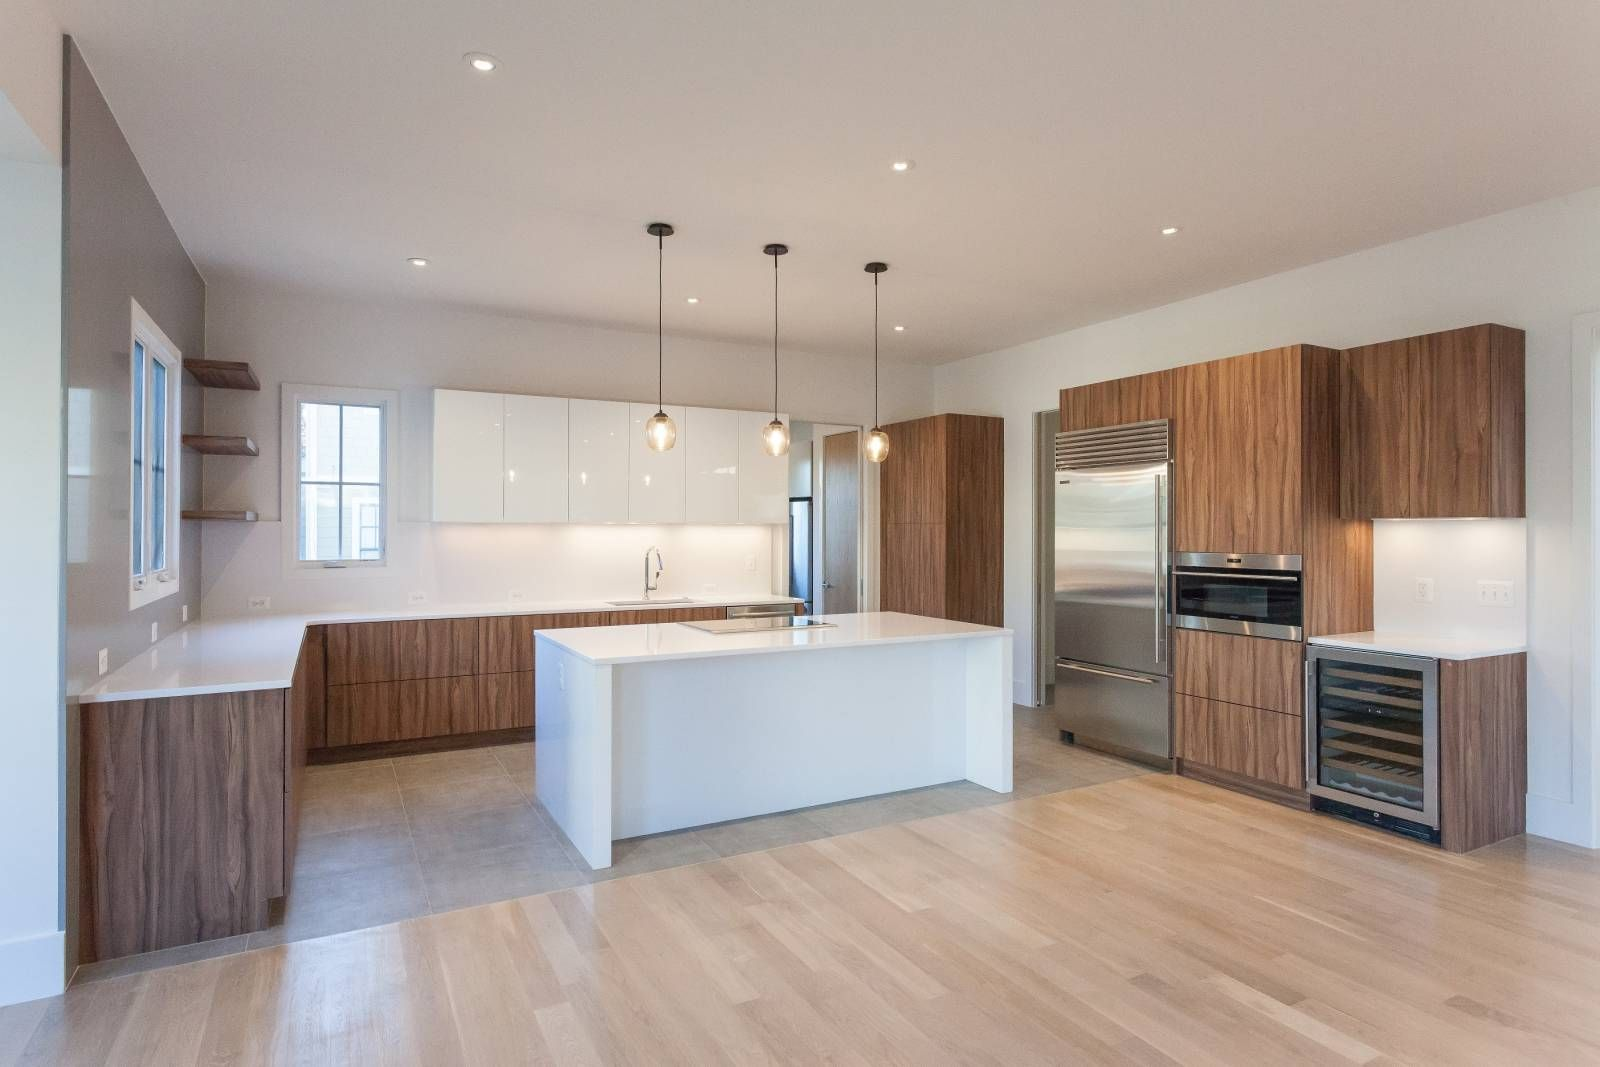 Modern Kitchen With White High Gloss And Striated Wood Cabinets In Custom Contemporary Home By Bcn Homes In Arl Modern Kitchen Contemporary House Wood Cabinets